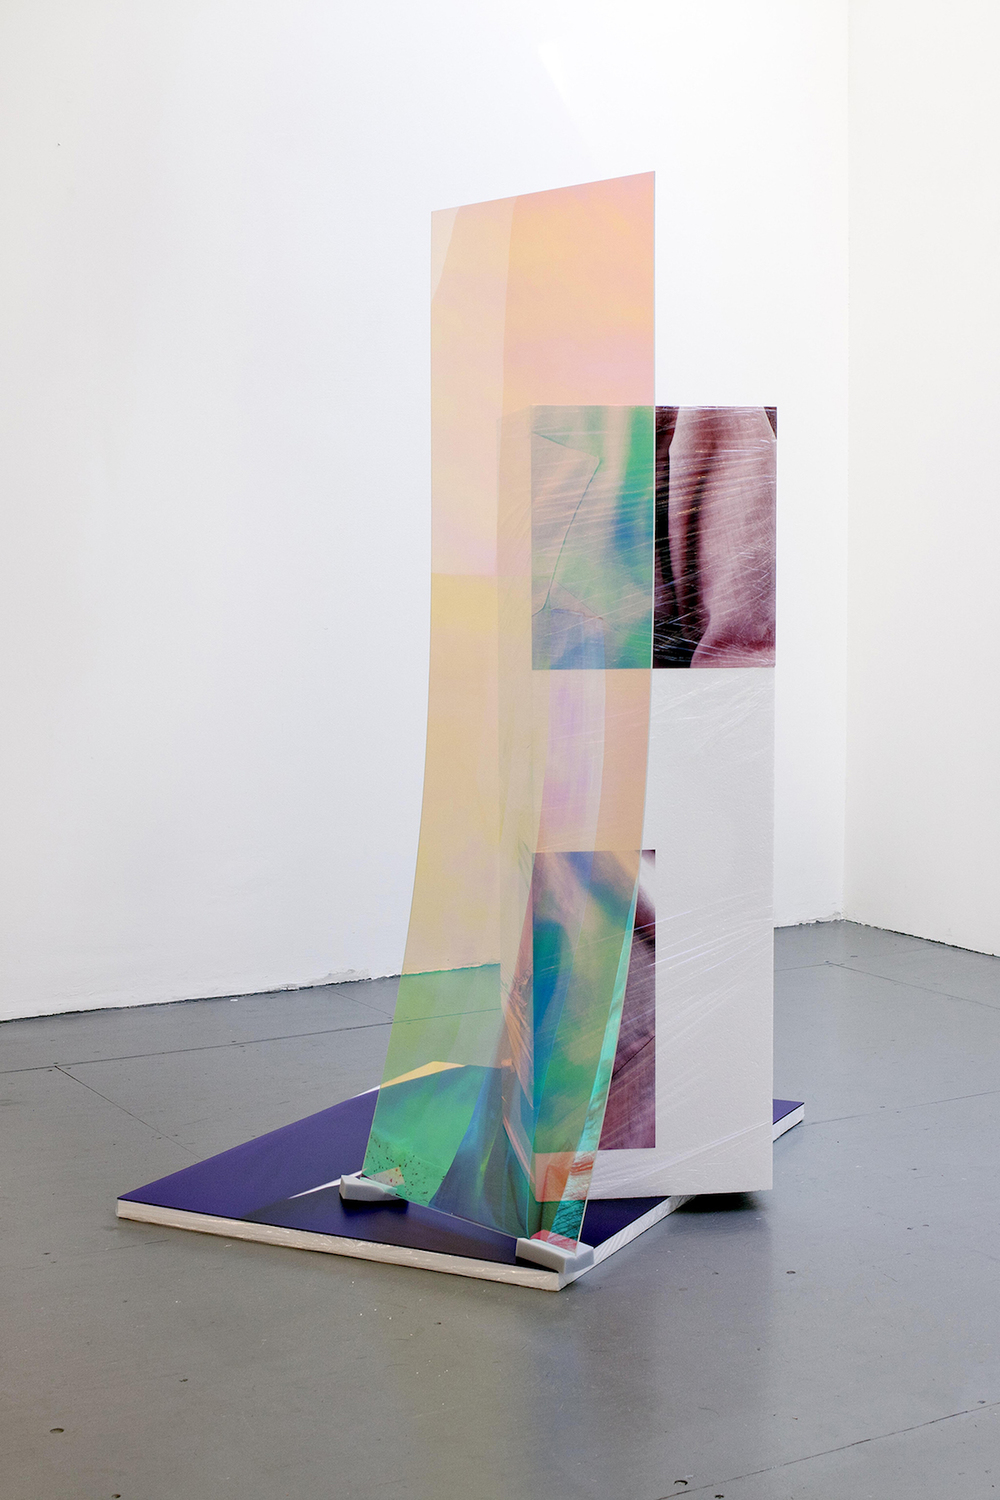 Sweaty Sculpture (back) , 167 x 90 x 107 cm, photo-stickers on polystyrene, cellophane, sponges, radiant plexiglass